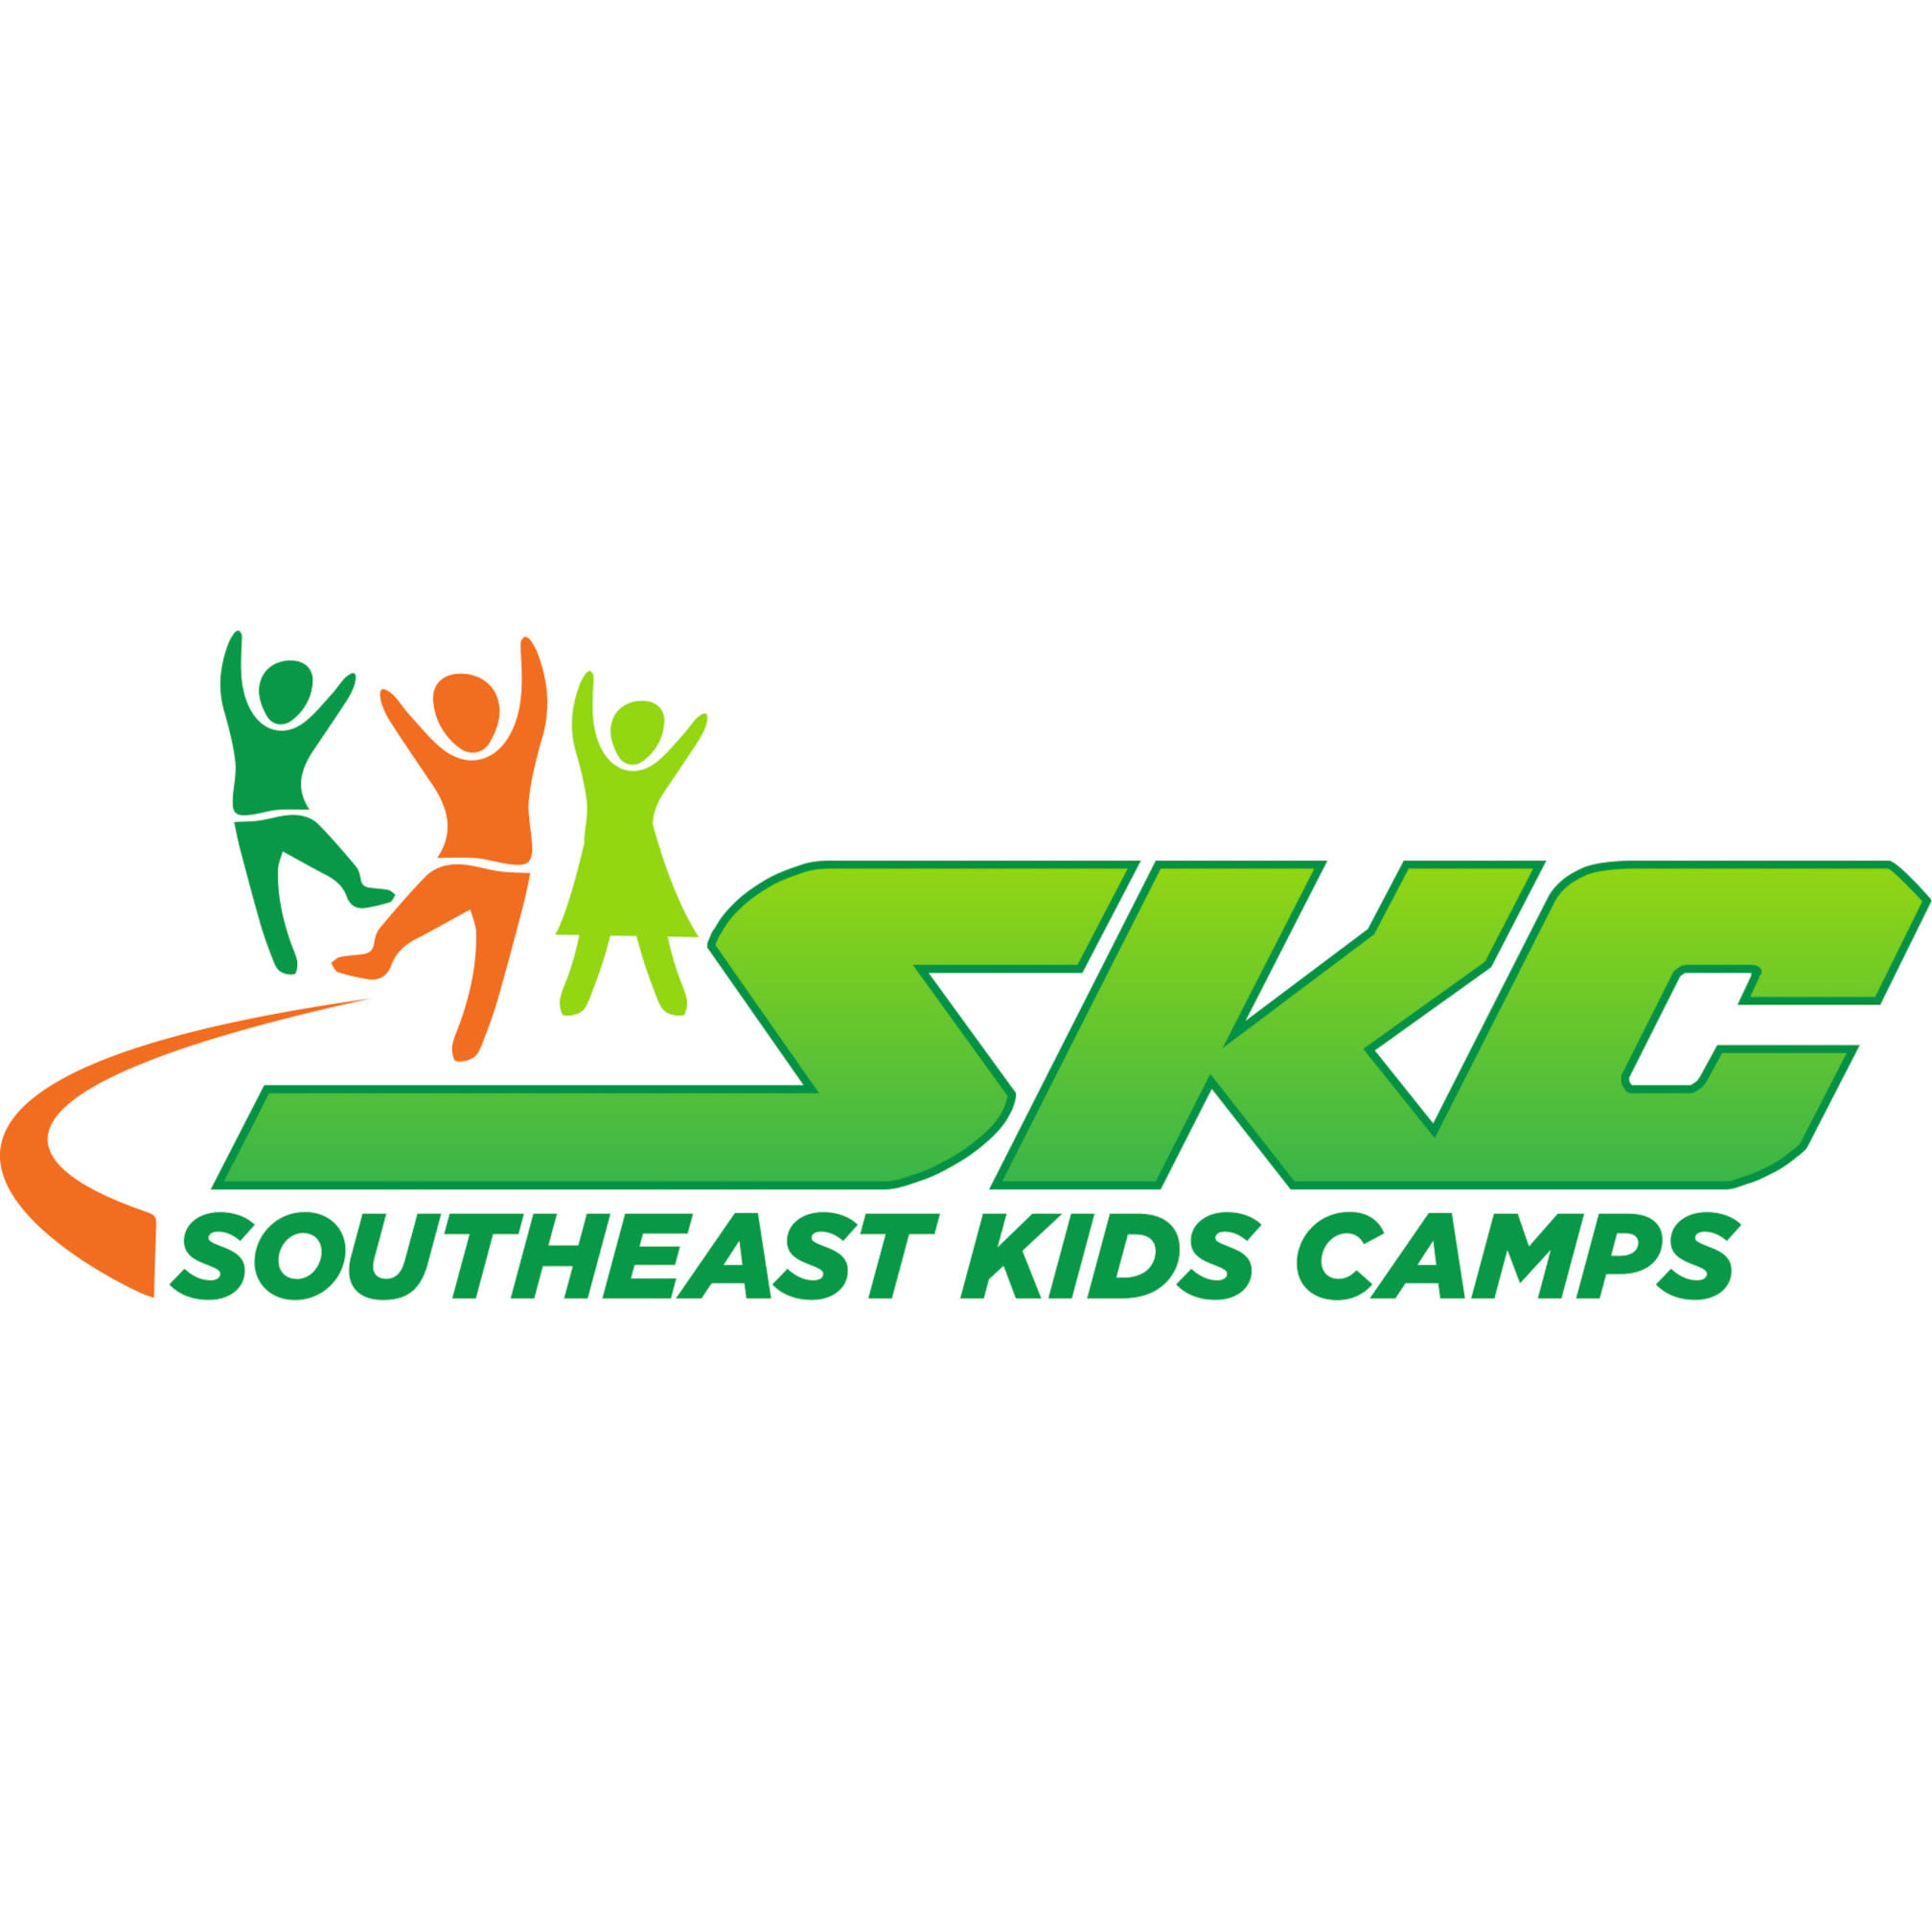 Southeast Kids Camps - Brighton, West Sussex  - 01444 461889 | ShowMeLocal.com